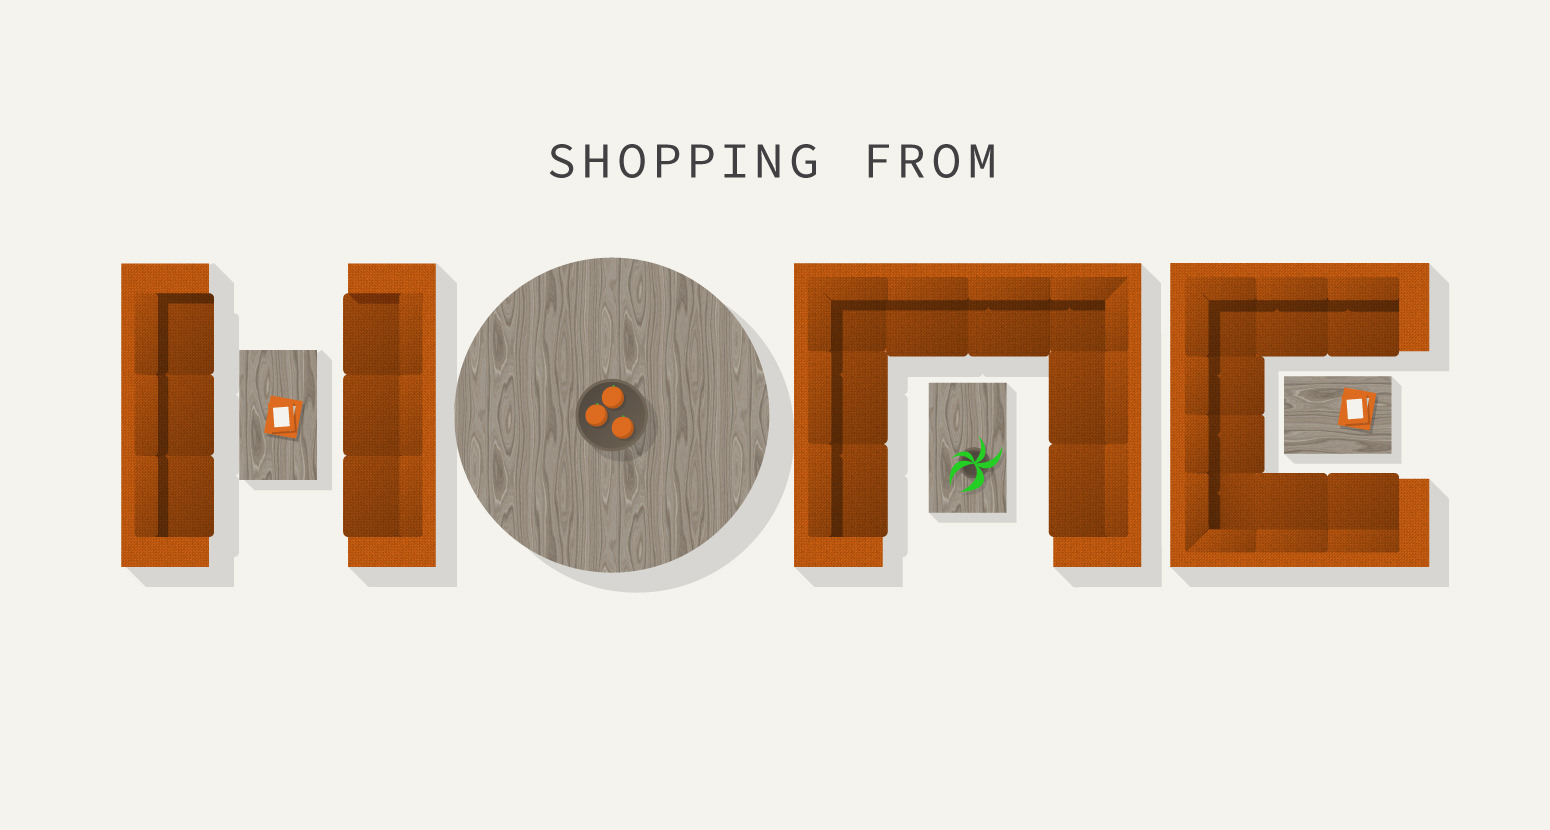 Furniture & eCommerce: Dispelling the Myths